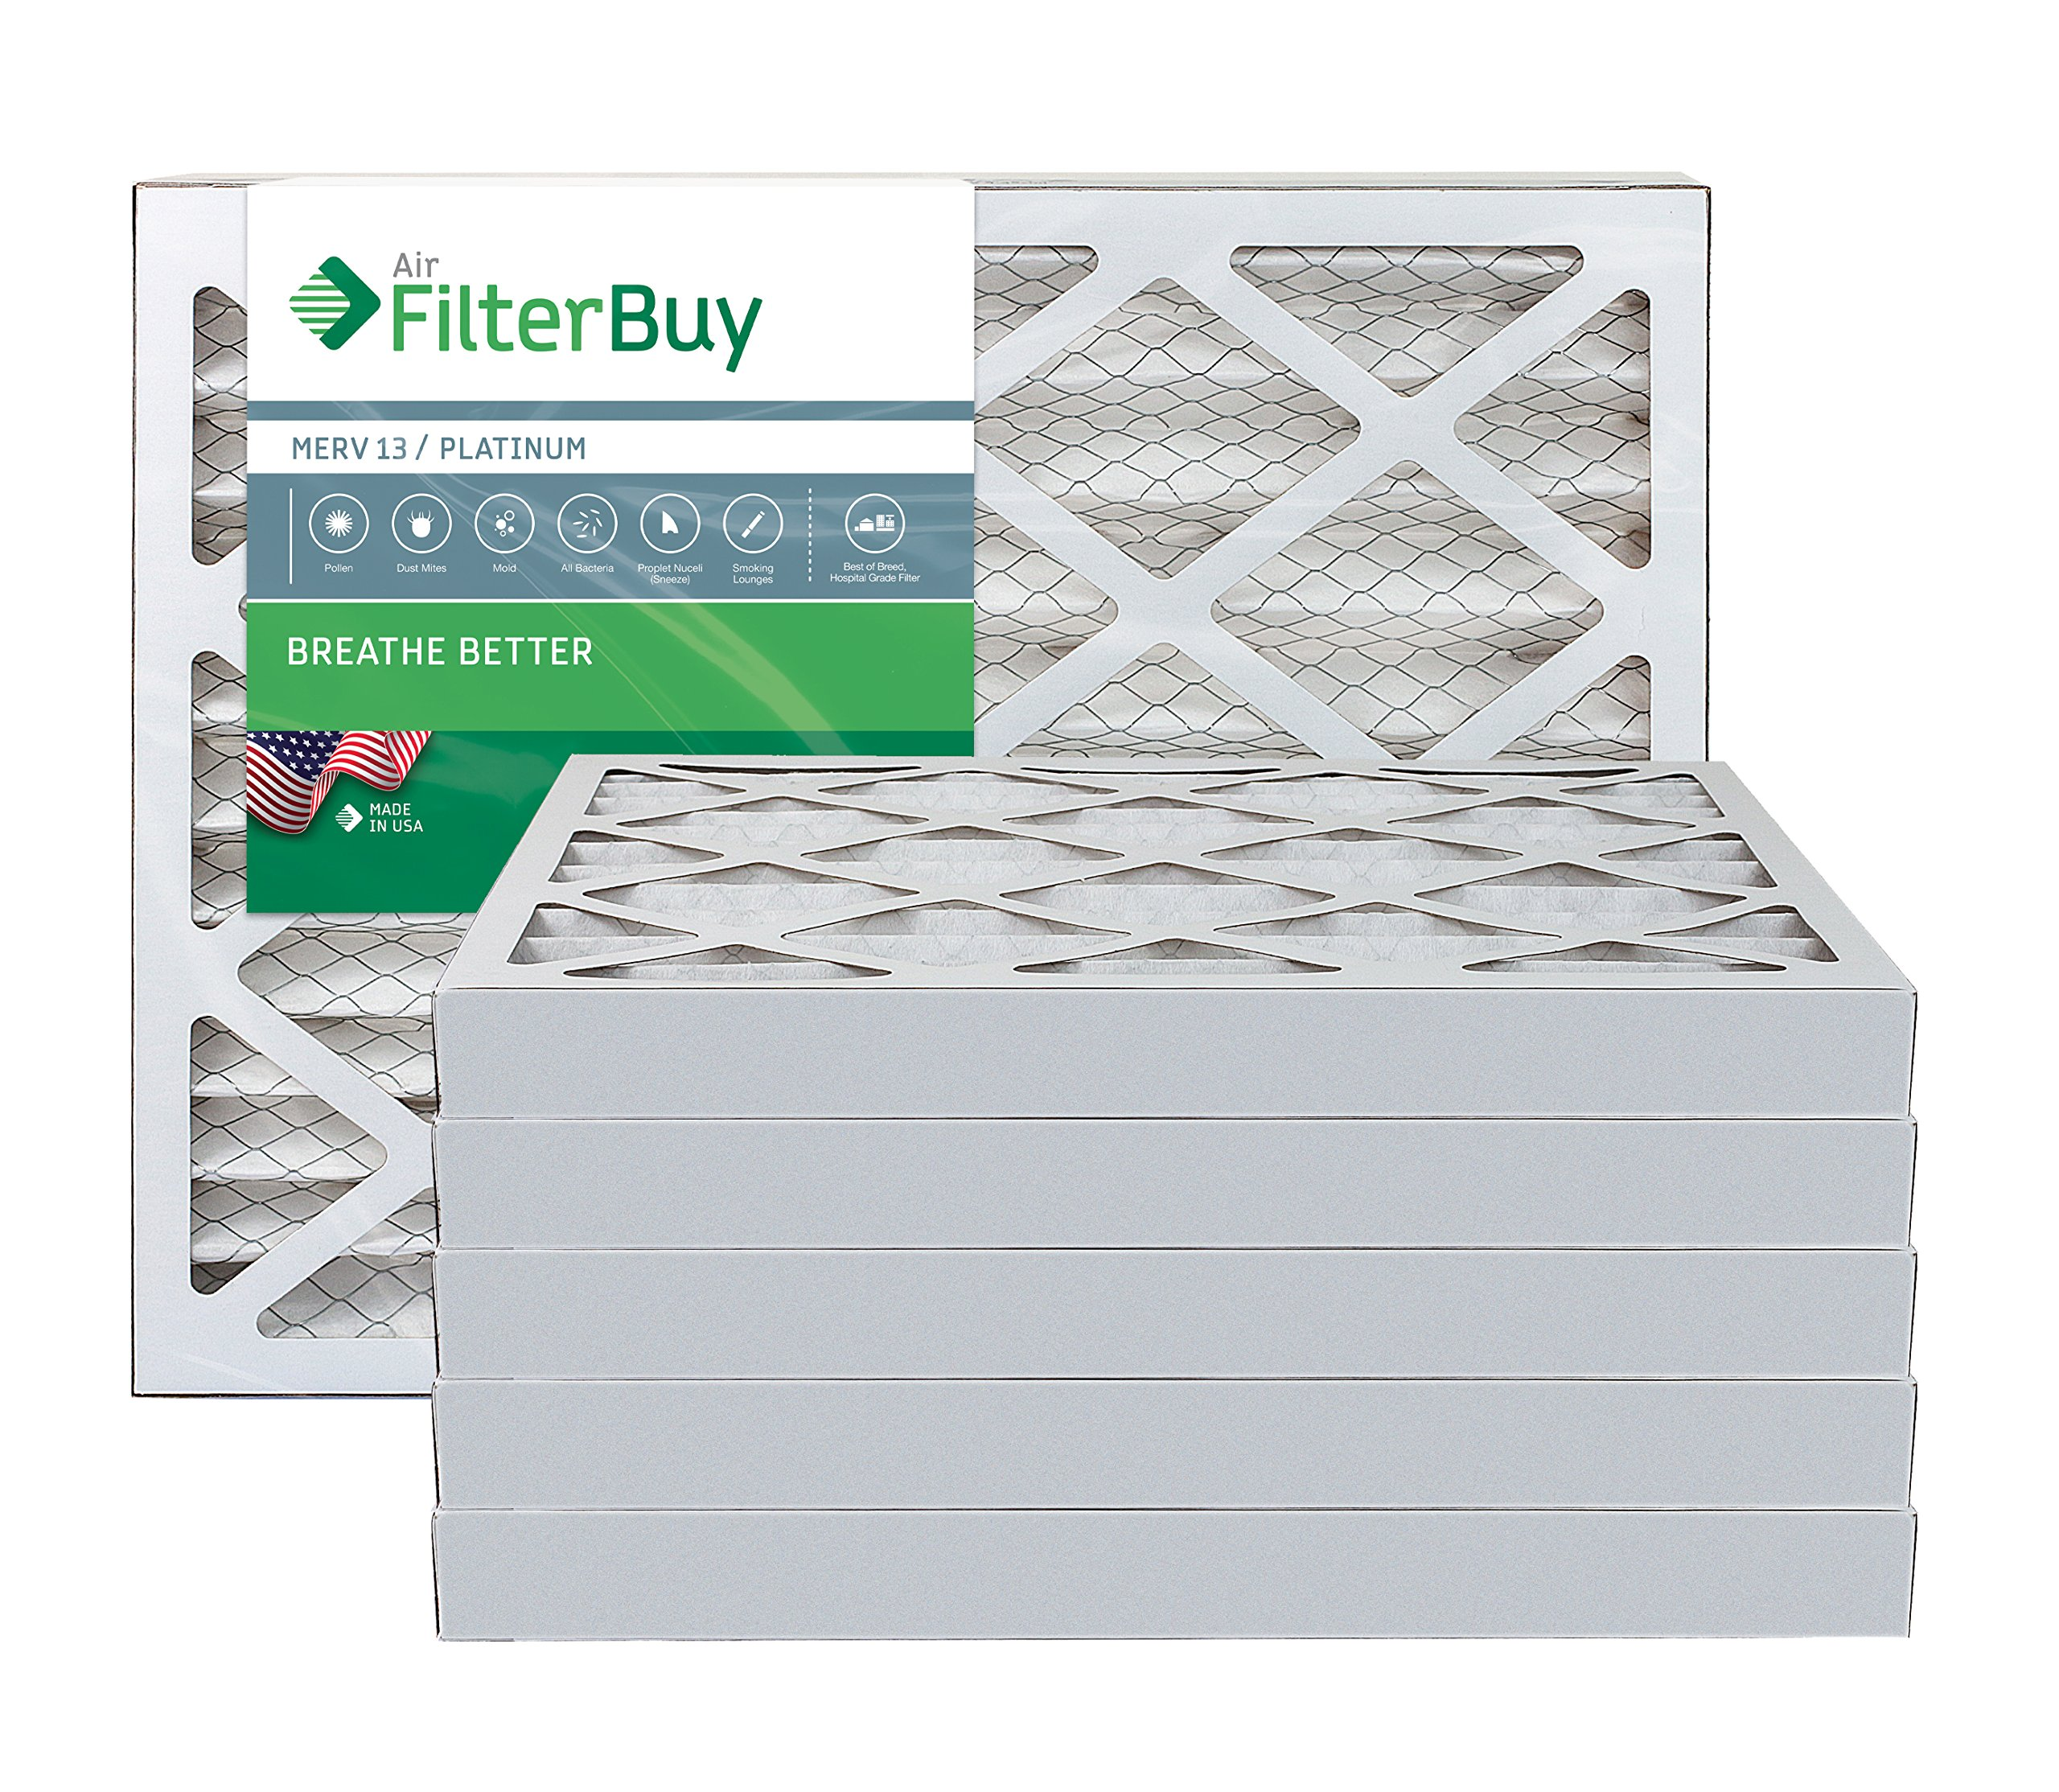 FilterBuy 28x30x2 MERV 13 Pleated AC Furnace Air Filter, (Pack of 6 Filters), 28x30x2 – Platinum